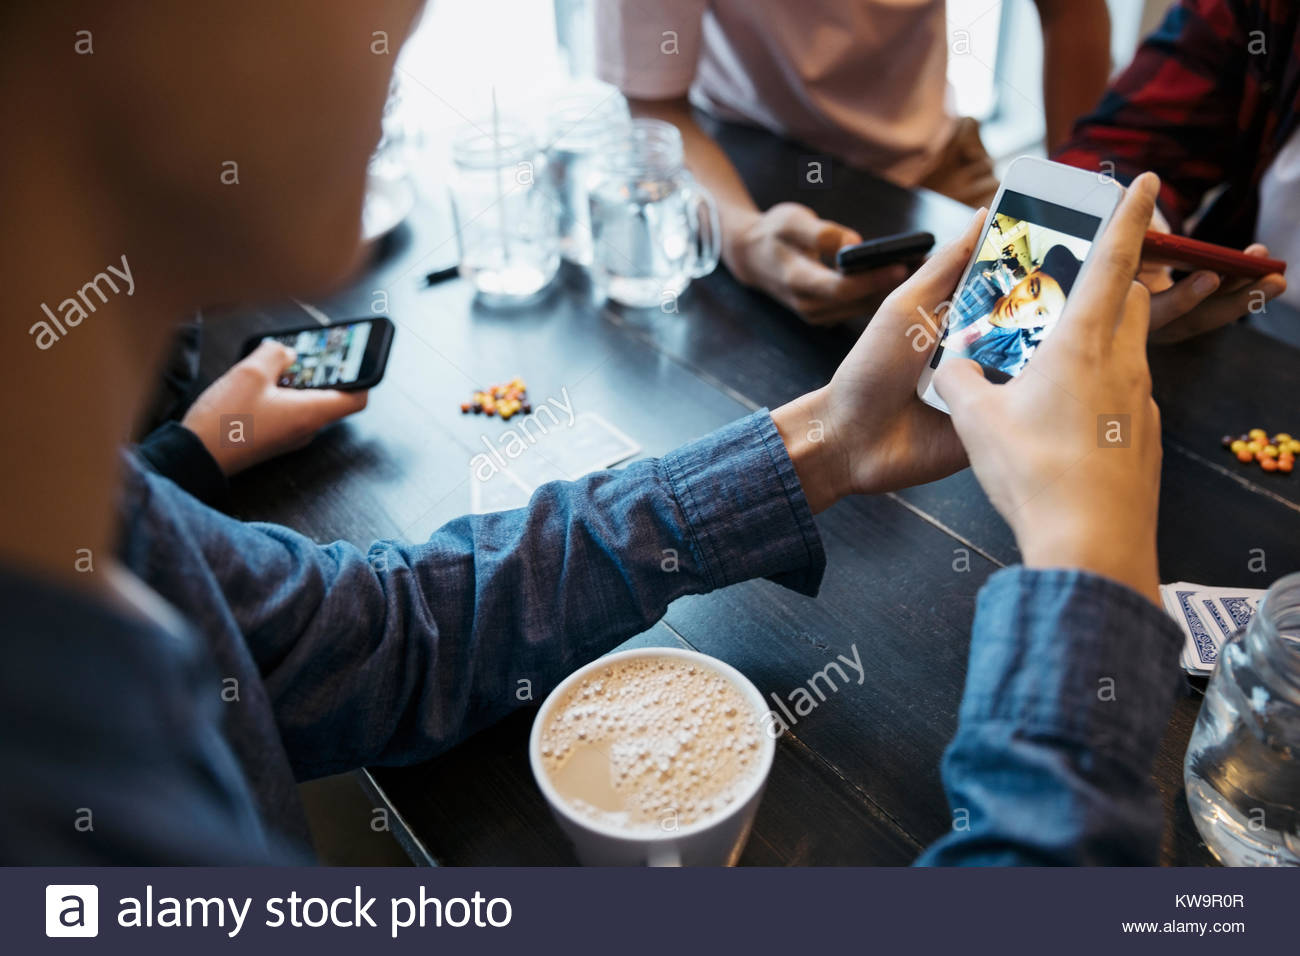 Tween boy using camera phone and drinking coffee at cafe table - Stock Image